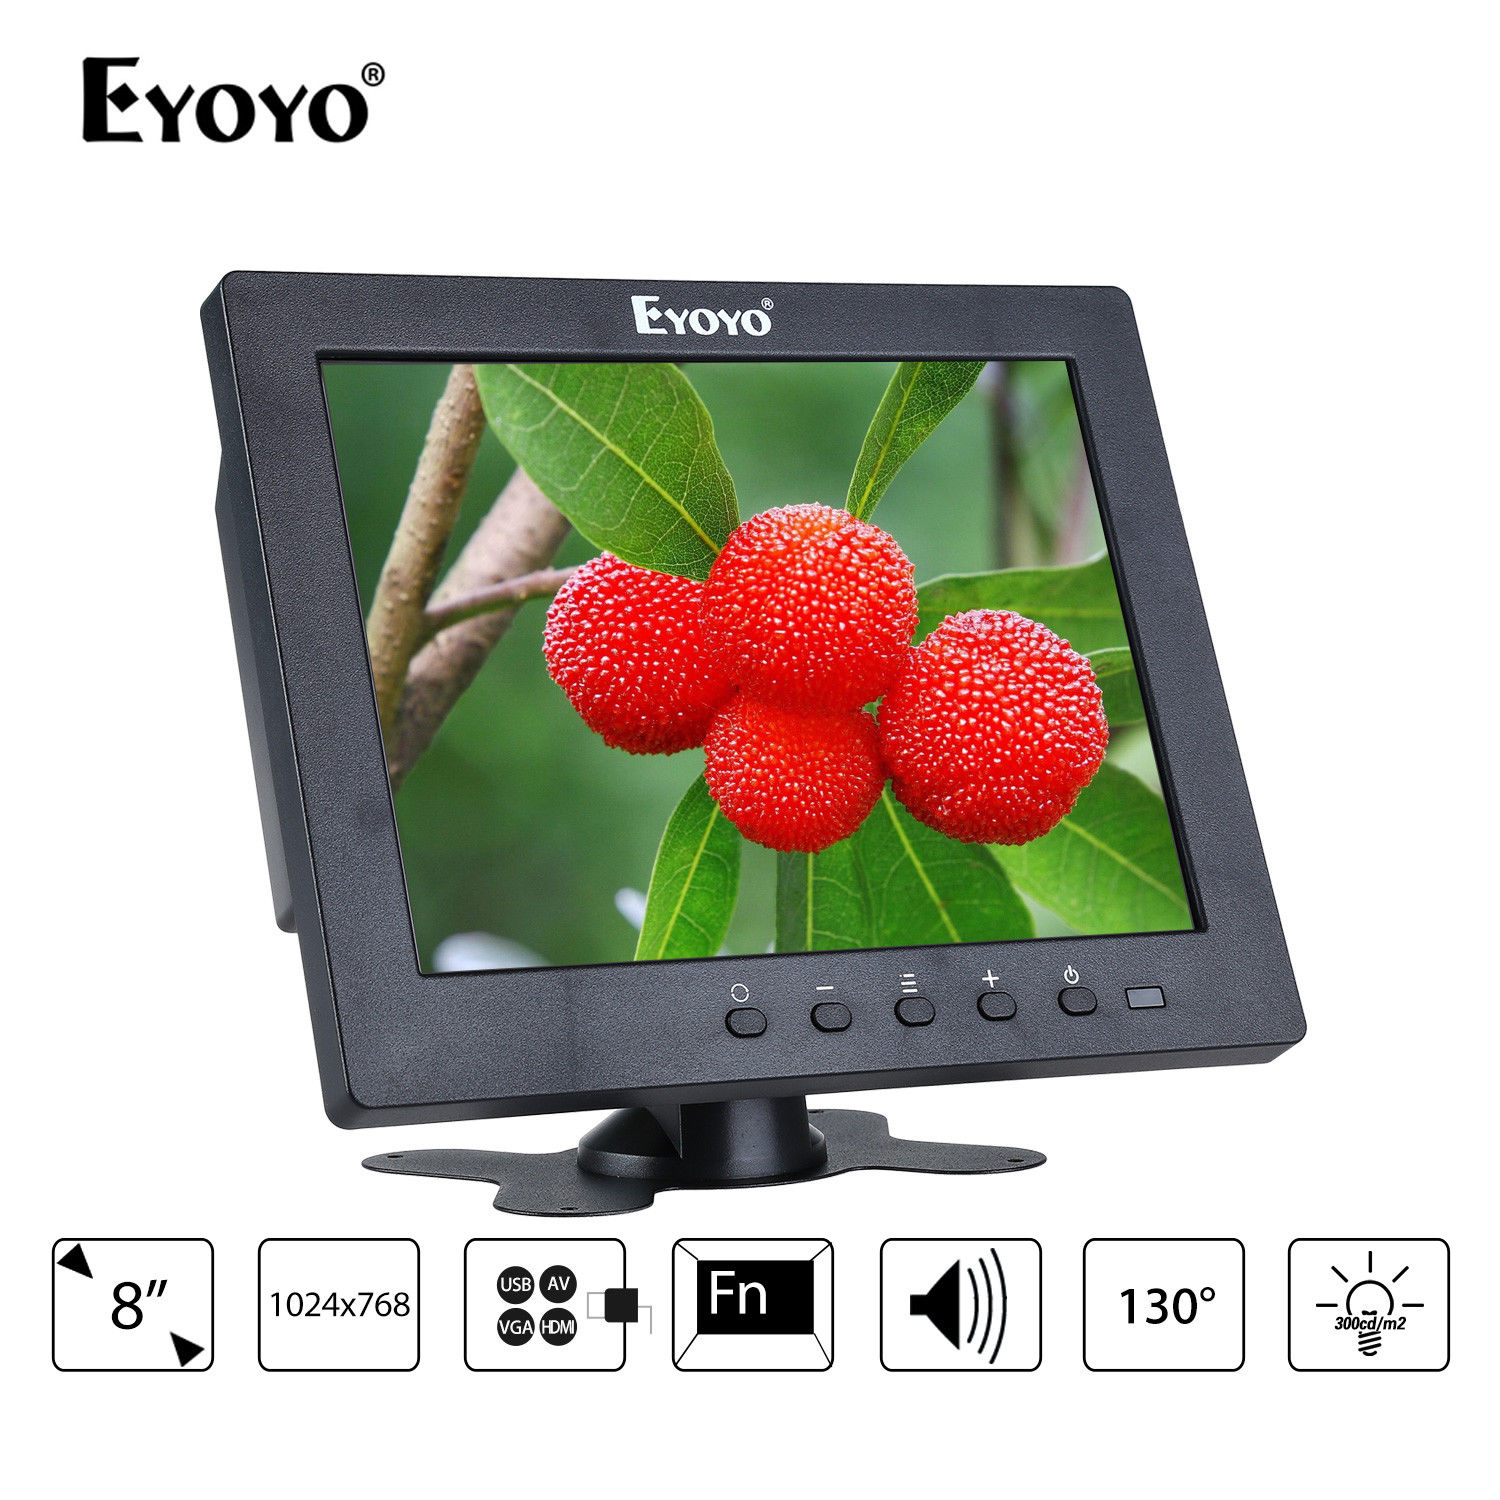 Eyoyo S801T Monitor 8 12ms 1024x768 LCD Screen Display With BNC/HDMl Output Built-in Loudspeakers For CCTV PC Laptop DVR Camera eyoyo g08 160 degree 8 inch 400 1 tft lcd monitor screen 4 3 1024 768 hdmi av vga video audio for cctv fpv with loudspeaker